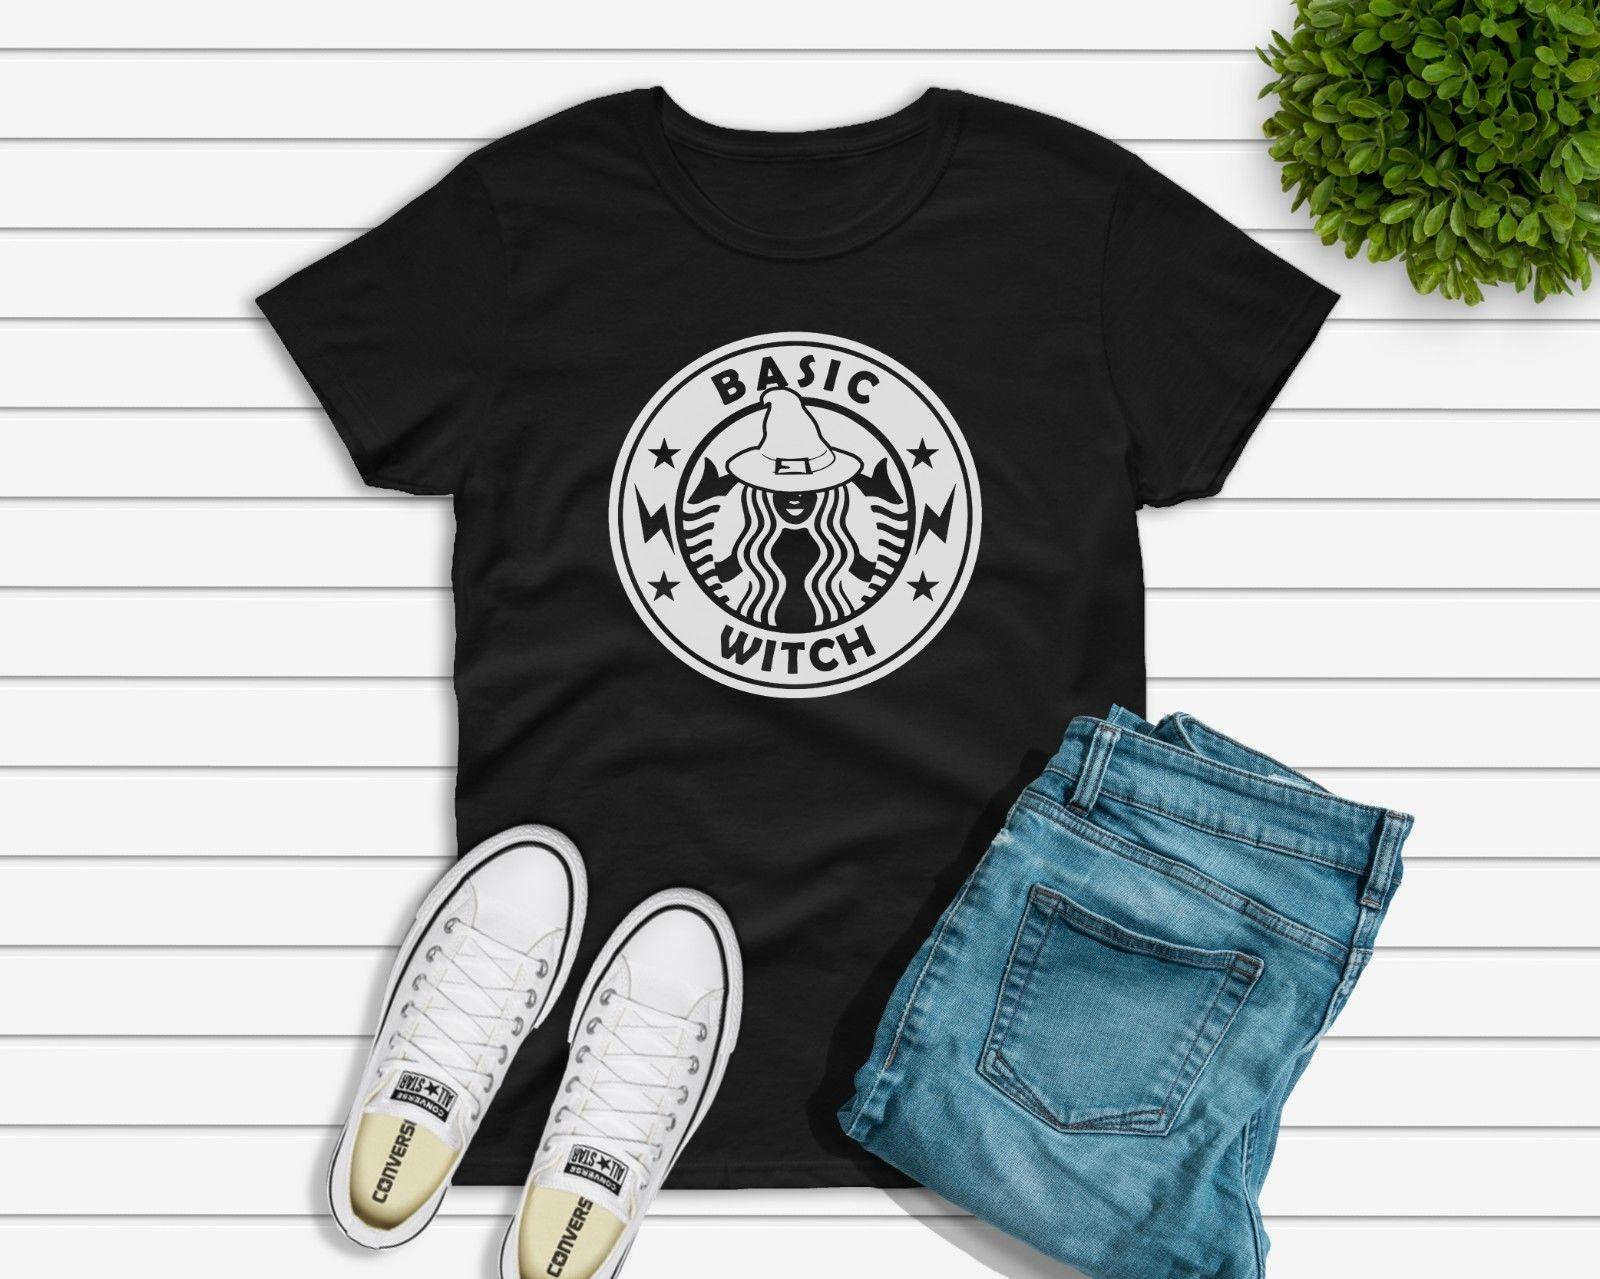 b25399ace5f Basic Witch Halloween Starbucks T Shirt Or DIY Transfer Womens Unisex UK  Seller Funny Unisex Cheap T Shirts For Sale Online One Day Only T Shirts  From ...